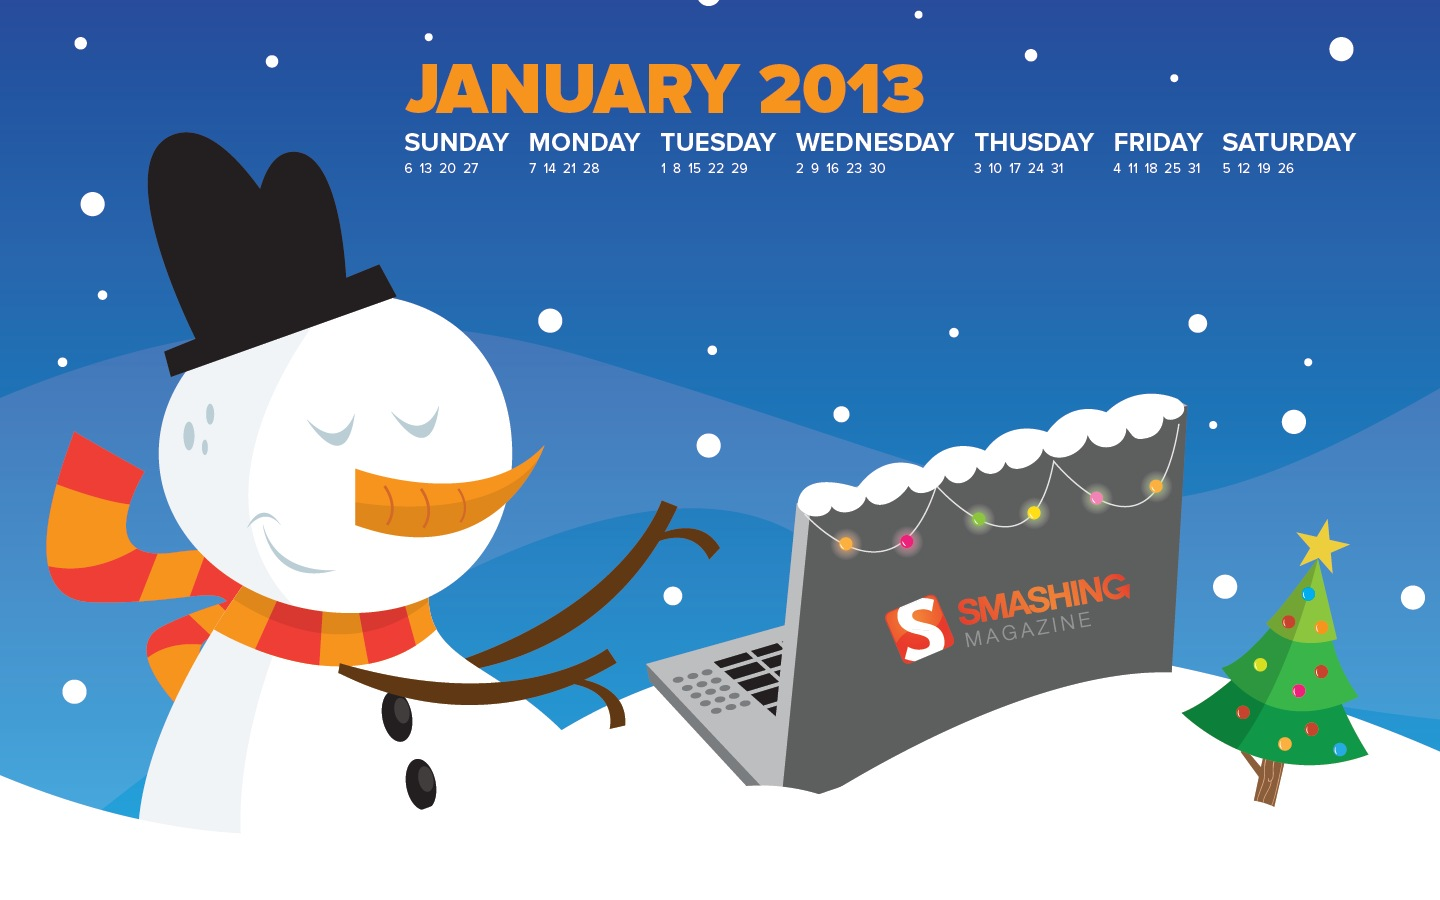 In January Calendar Wallpaper 32102